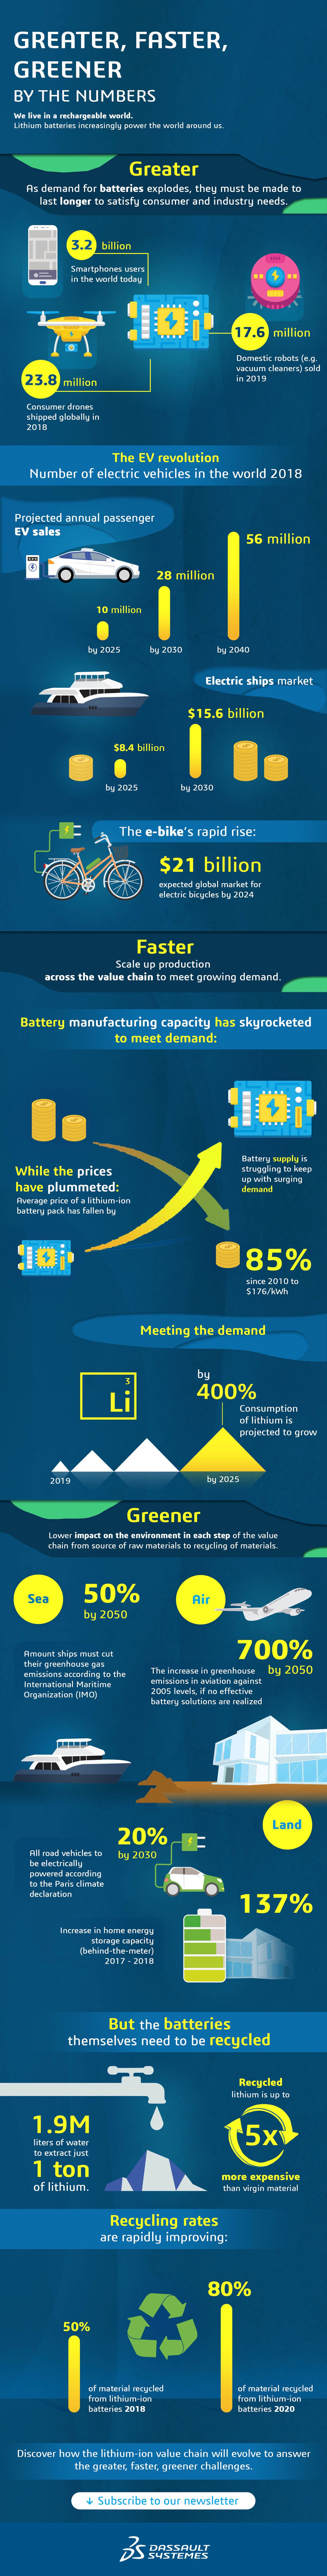 Greater Faster Greener by the Numbers > Desktop Infographic > Dassault Systèmes